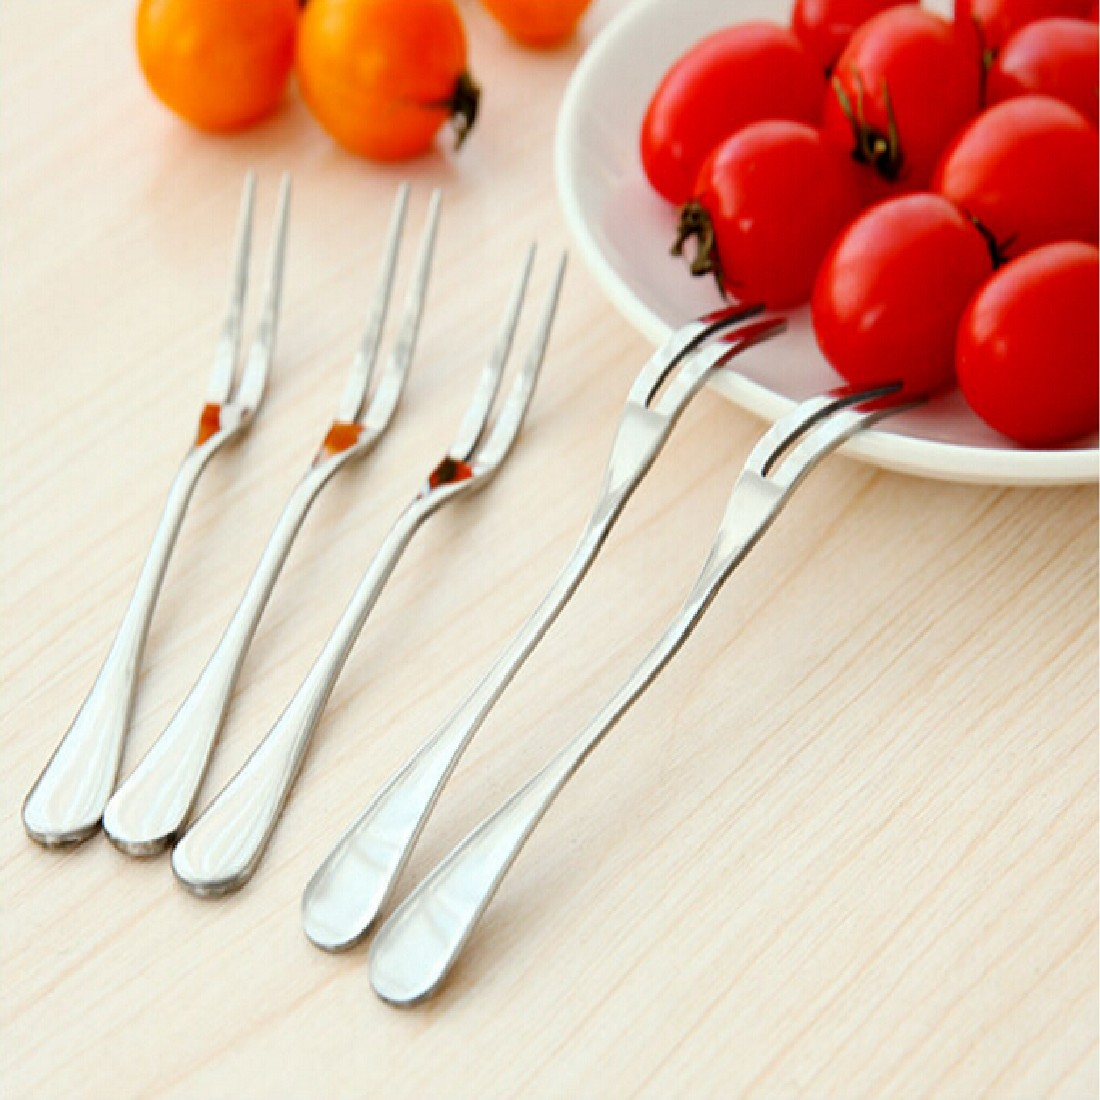 New High Quality Fashion Stainless Steel Fruit Fork Two Tooth Dessert Fork Eating Very C ...